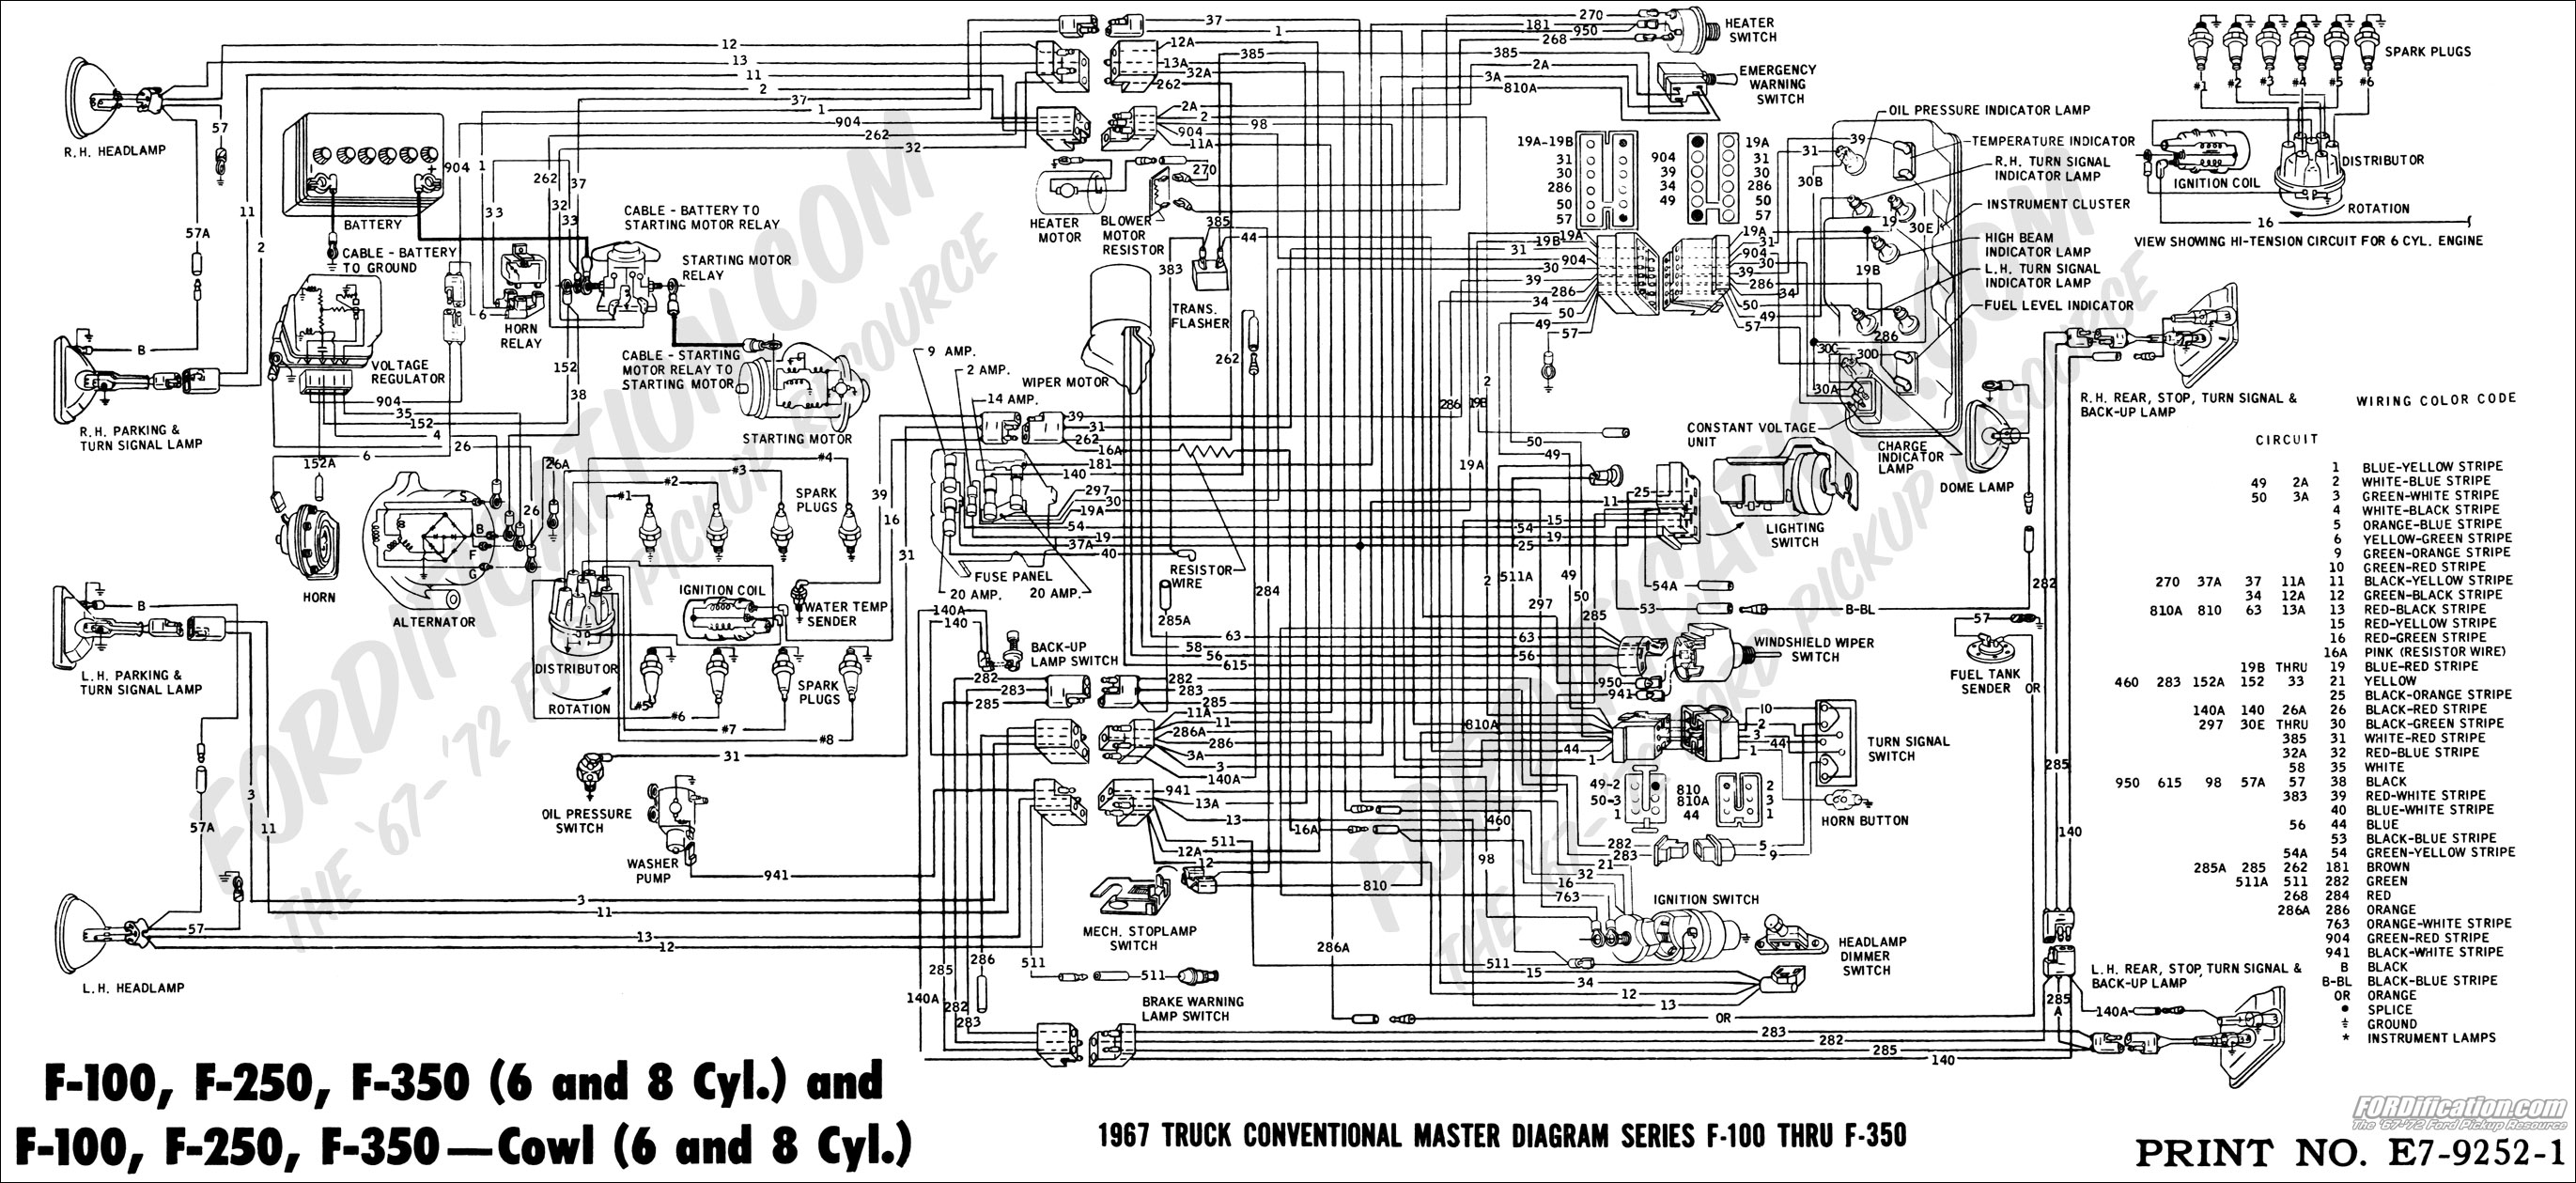 67masterdiagram ford truck technical drawings and schematics section h wiring f150 wiring schematic at mifinder.co